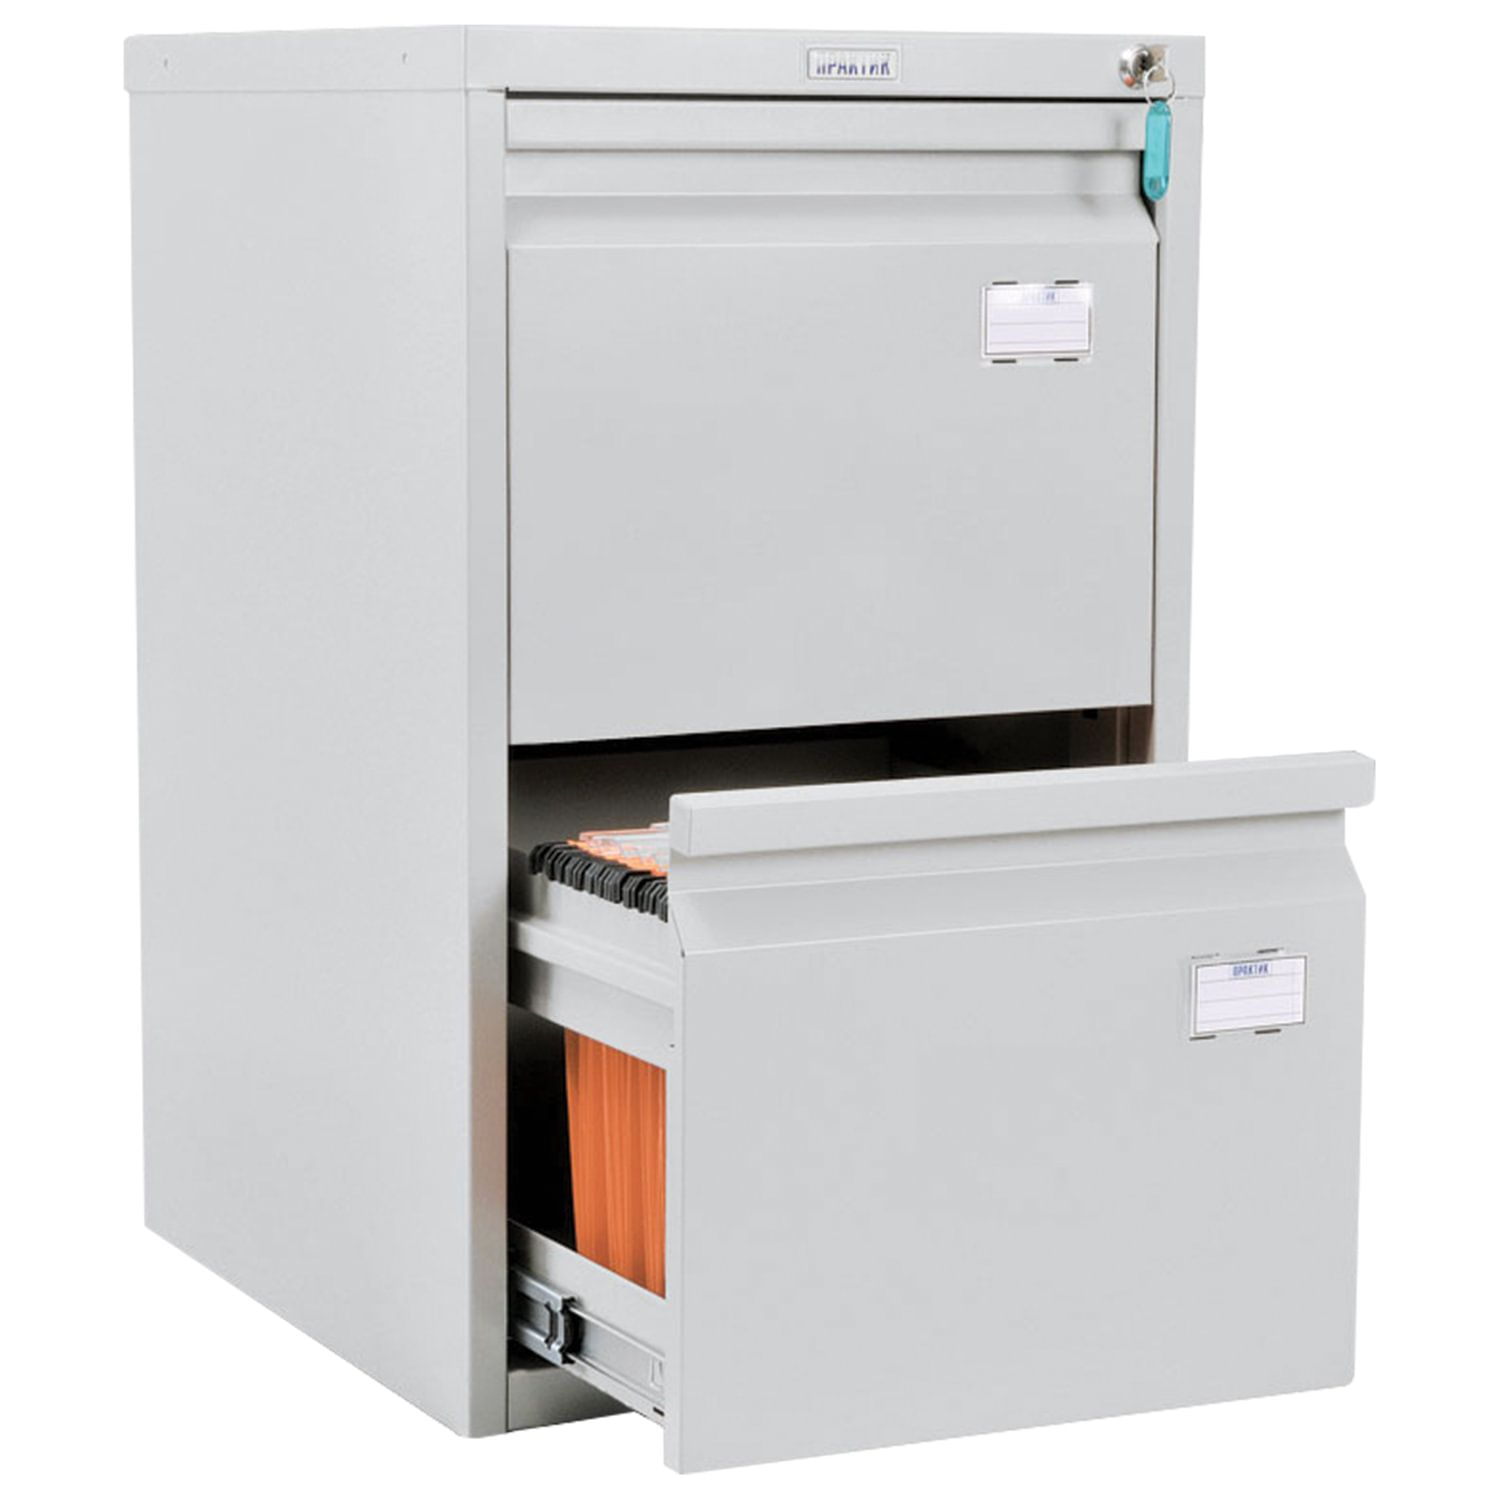 A-42 card cabinet, 685 x408 x485 mm, 2 boxes for 84 hanging folders, A4 folder format (FREE folders)